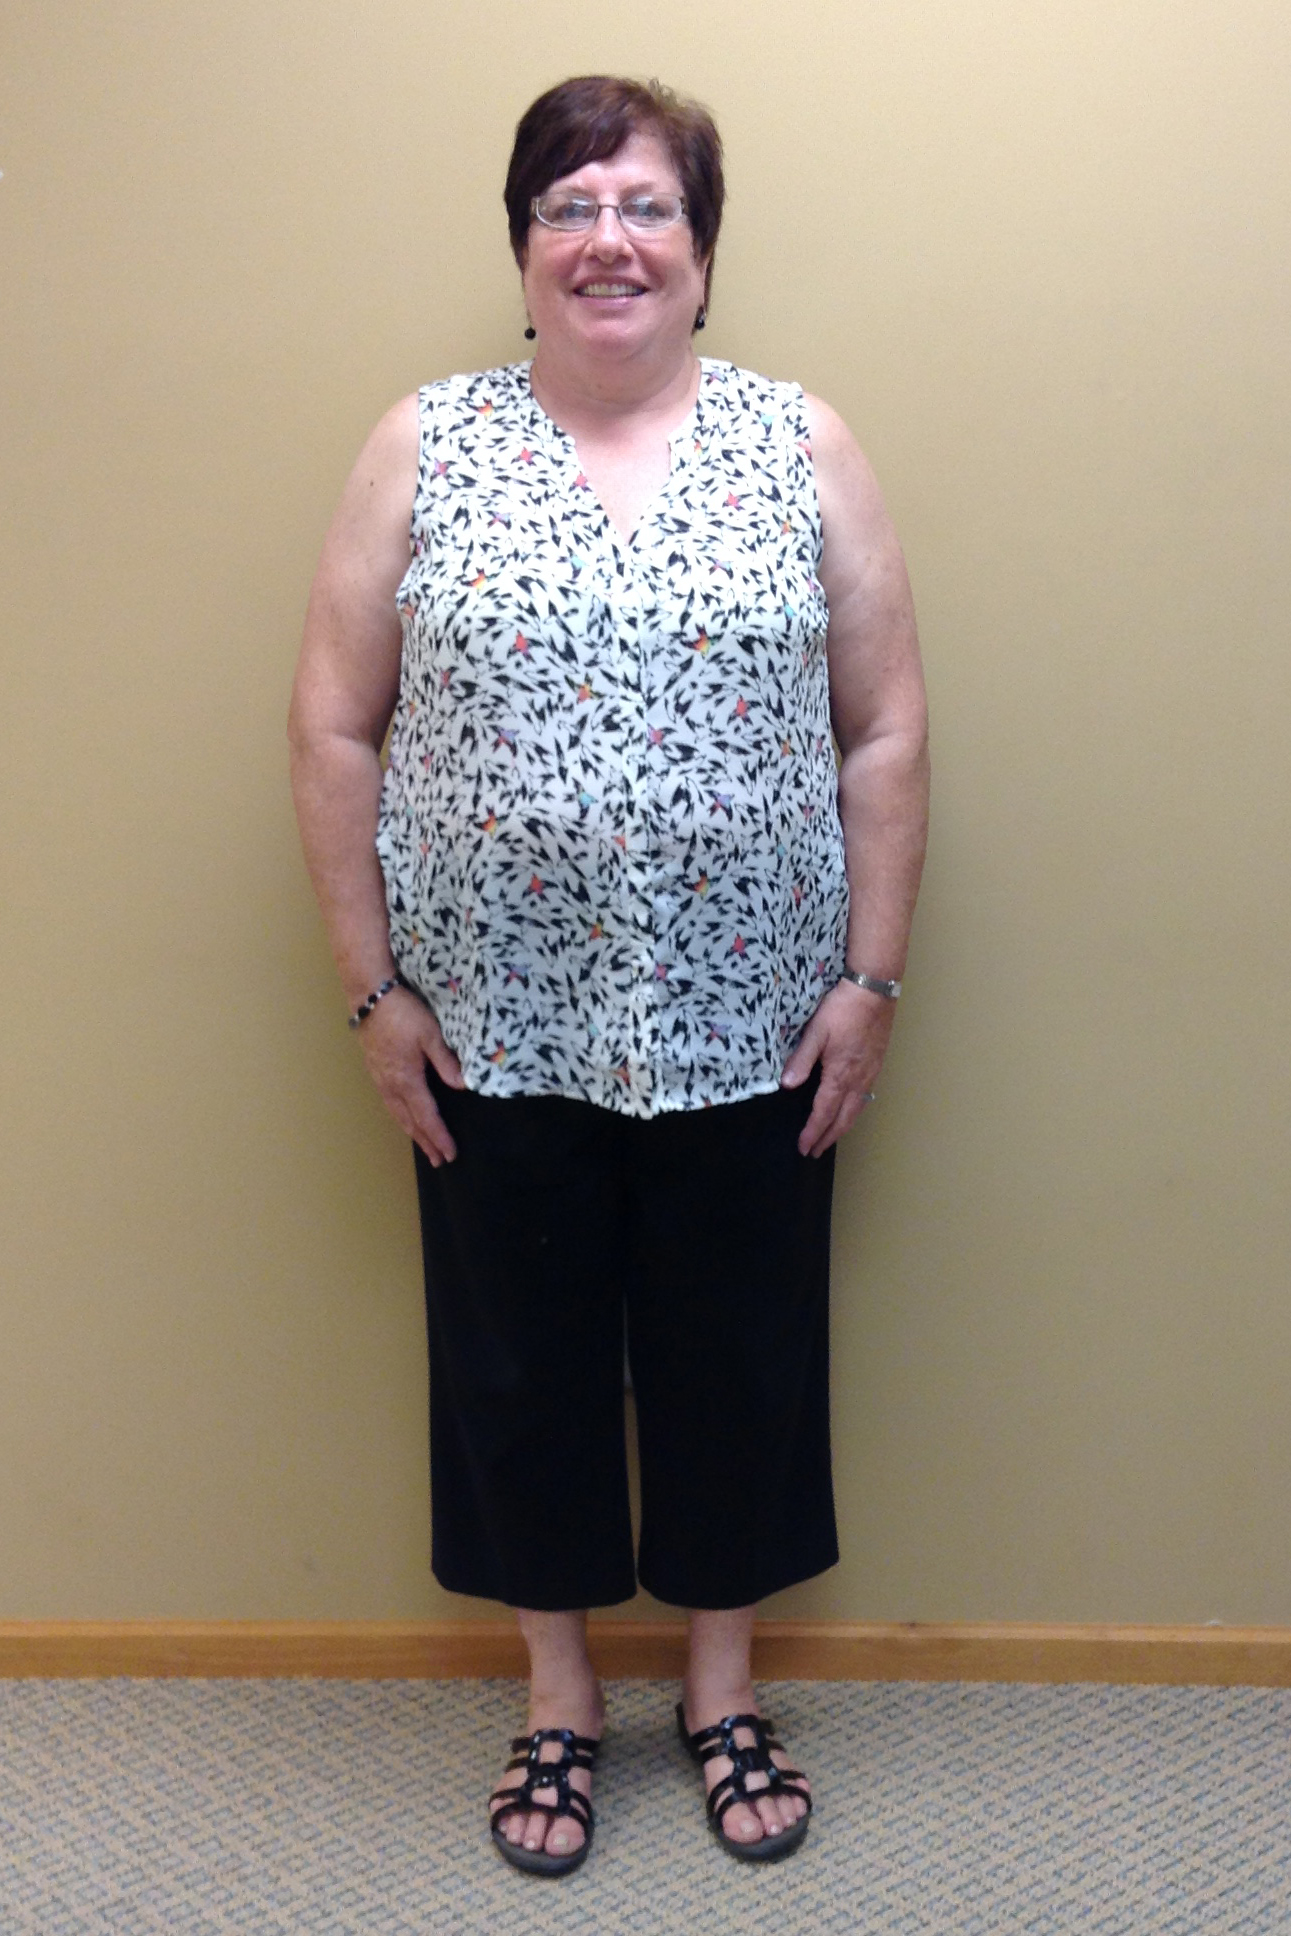 nuyou weight loss client vickie bain before